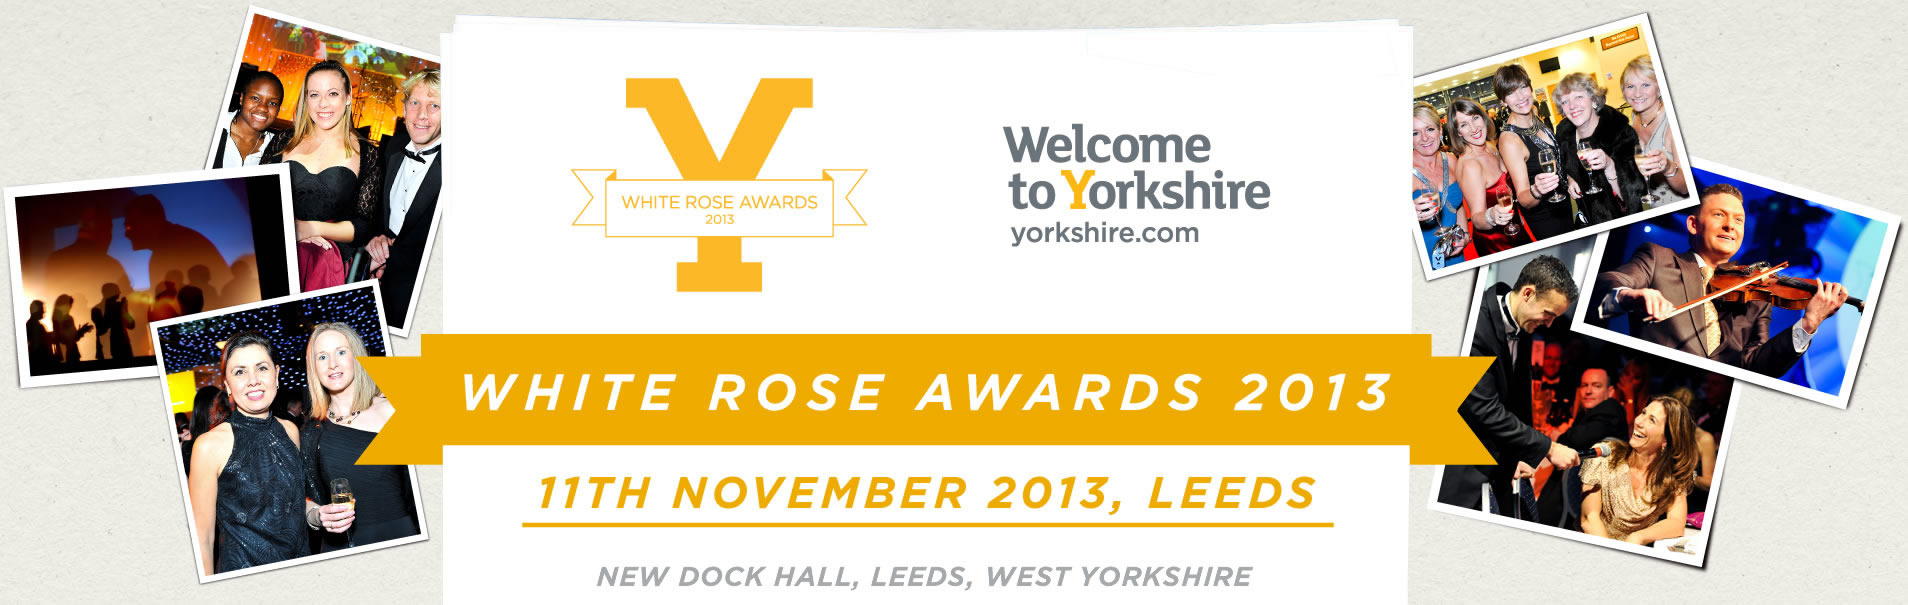 White Rose Awards 2013